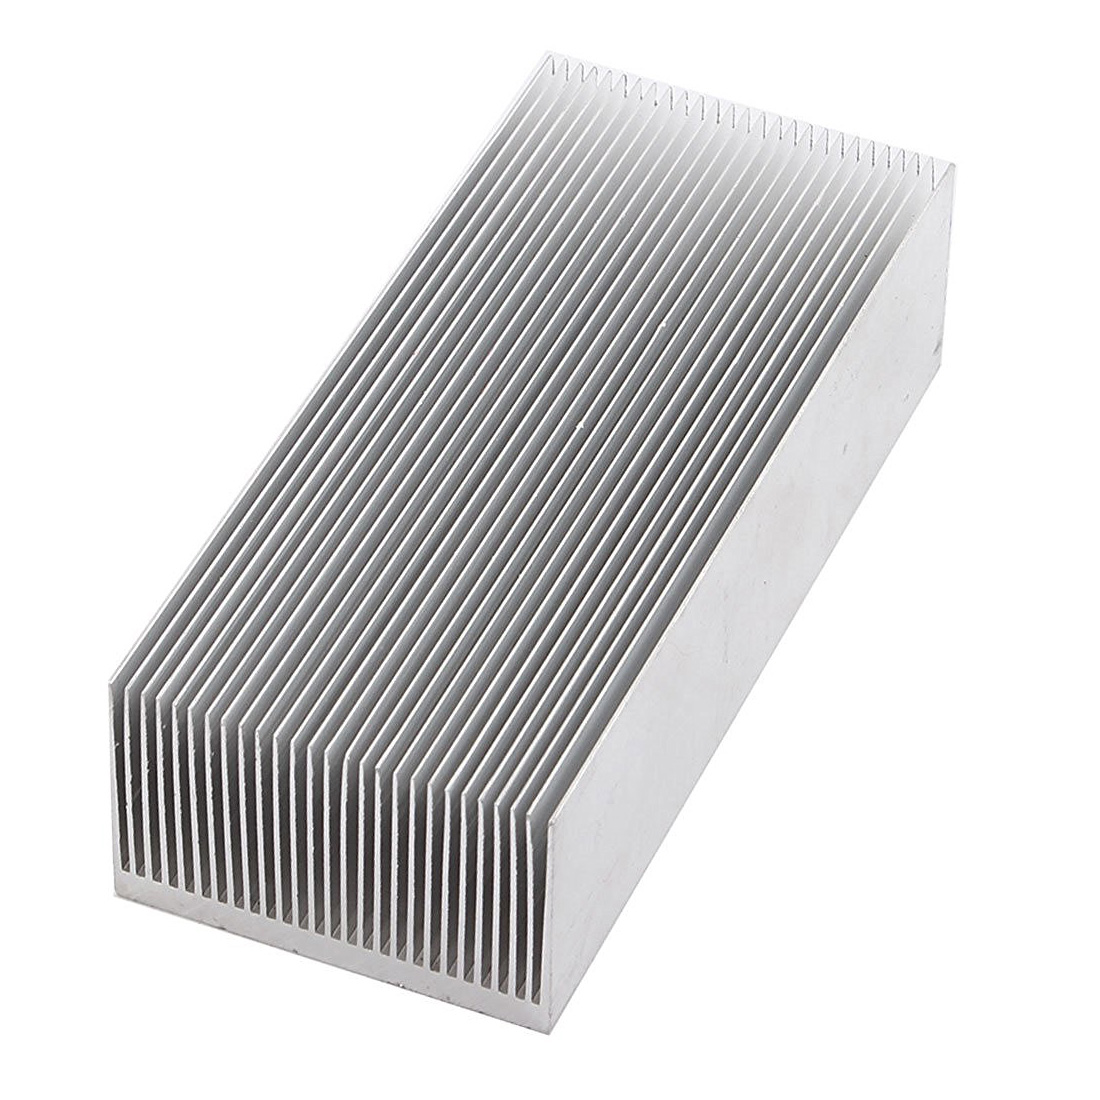 Aluminum Heat Radiator Heatsink Cooling Fin 150x69x37mm Silver Tone 5pcs lot pure copper broken groove memory mos radiator fin raspberry pi chip notebook radiator 14 14 4 0mm copper heatsink